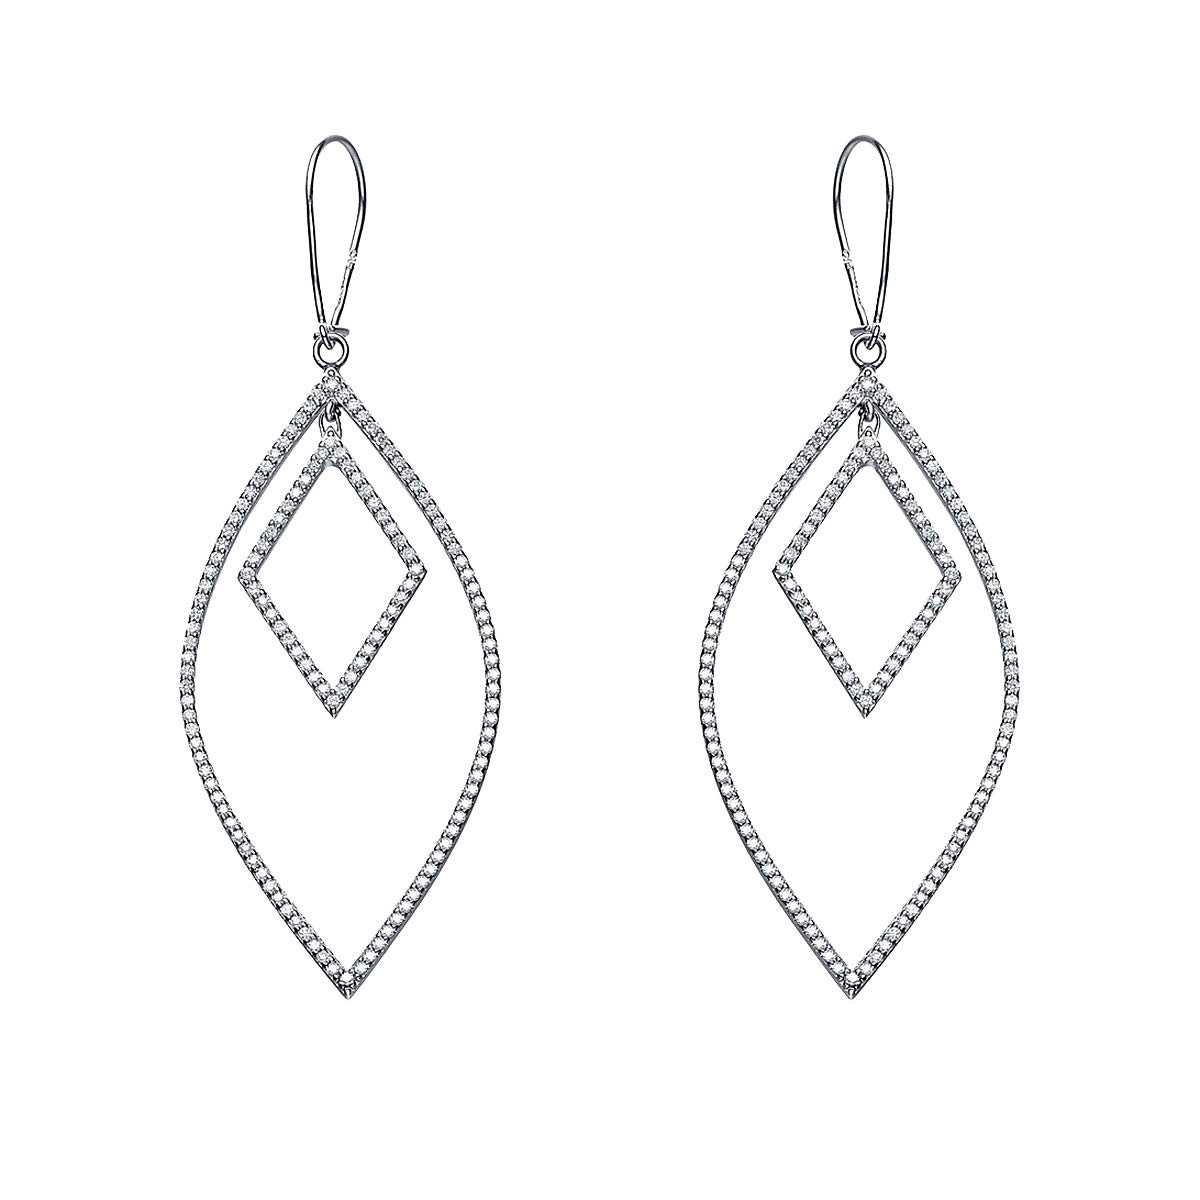 0.75 TCW Round Cut Simulated Diamond Drop Dangle Earrings 14k White Gold Over